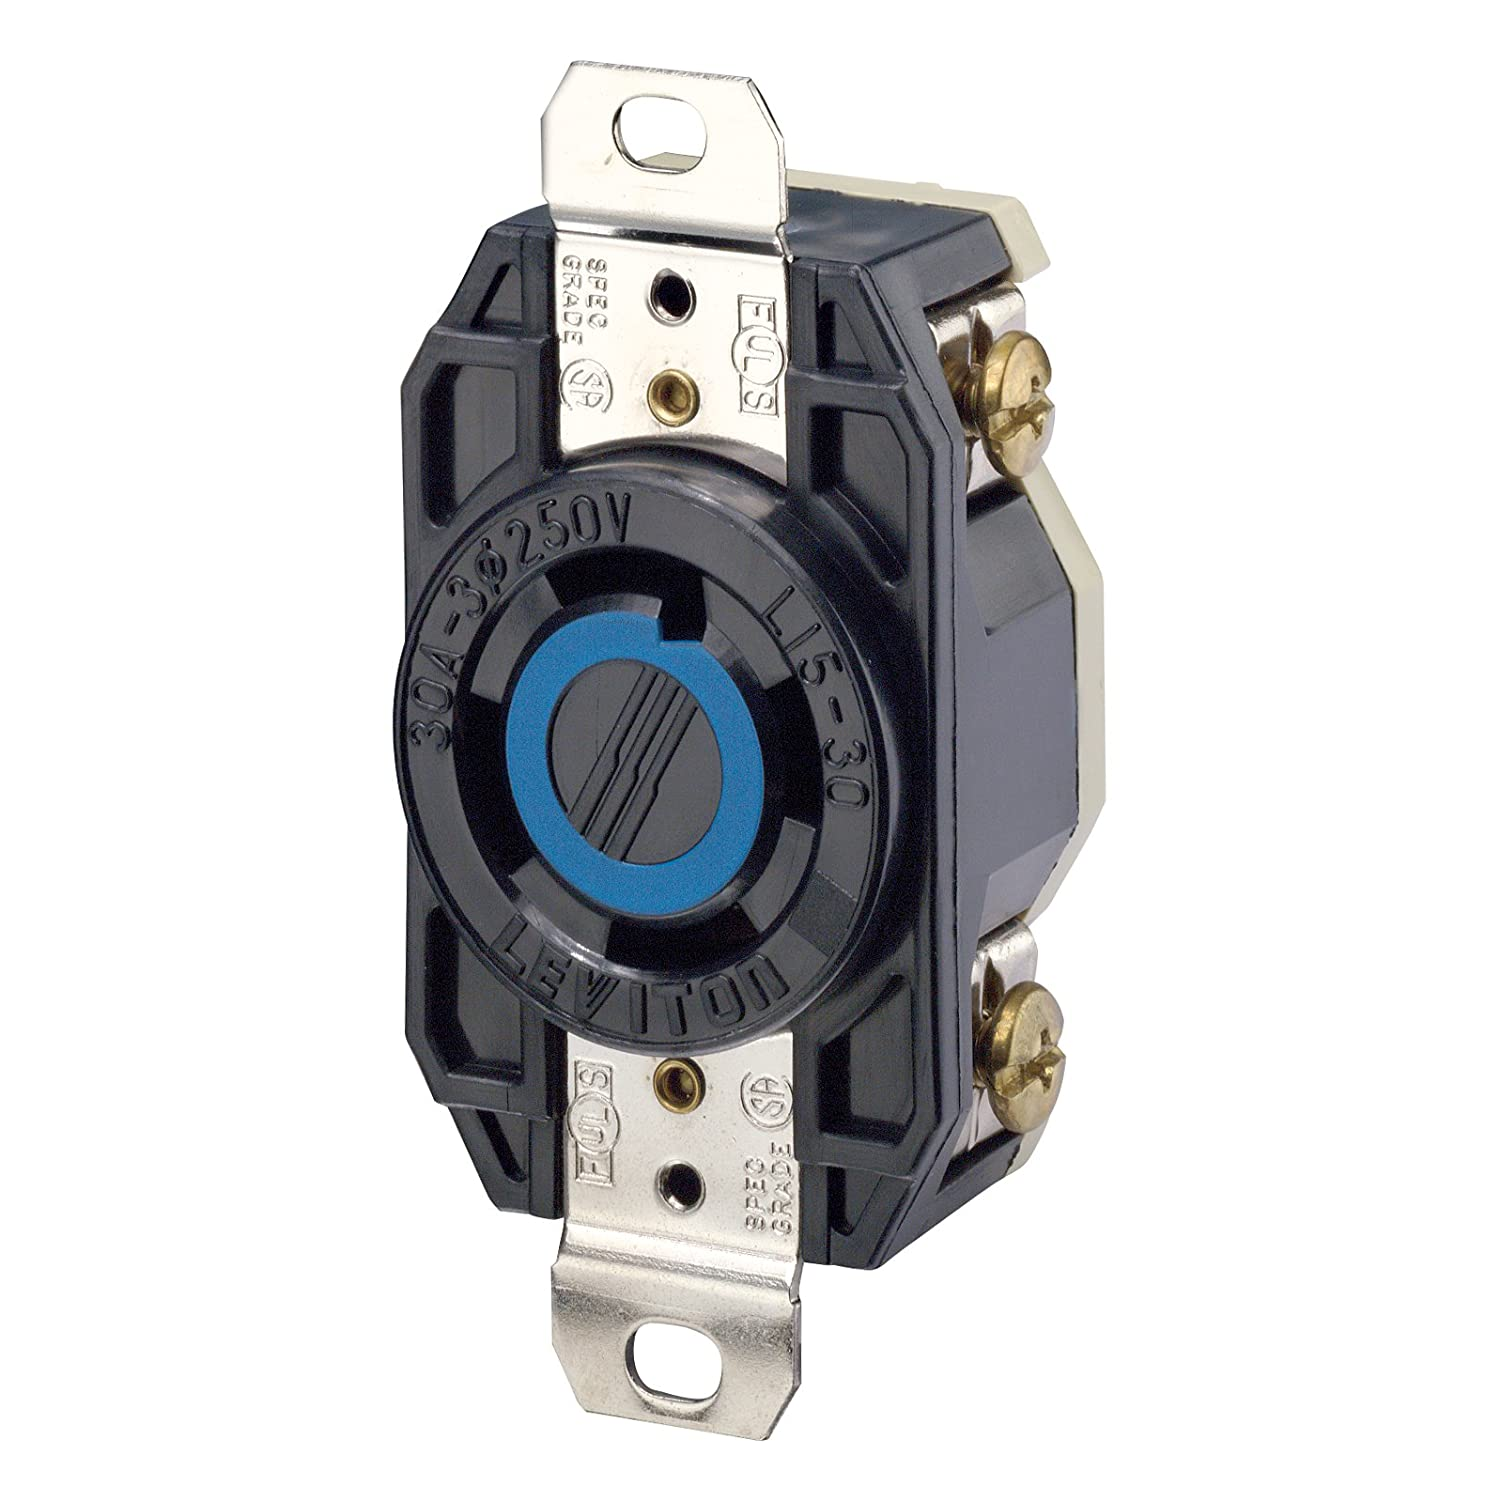 71QmADEo8EL._SL1500_ leviton 2720 30 amp, 250 volt 3 phase, flush mounting locking  at edmiracle.co